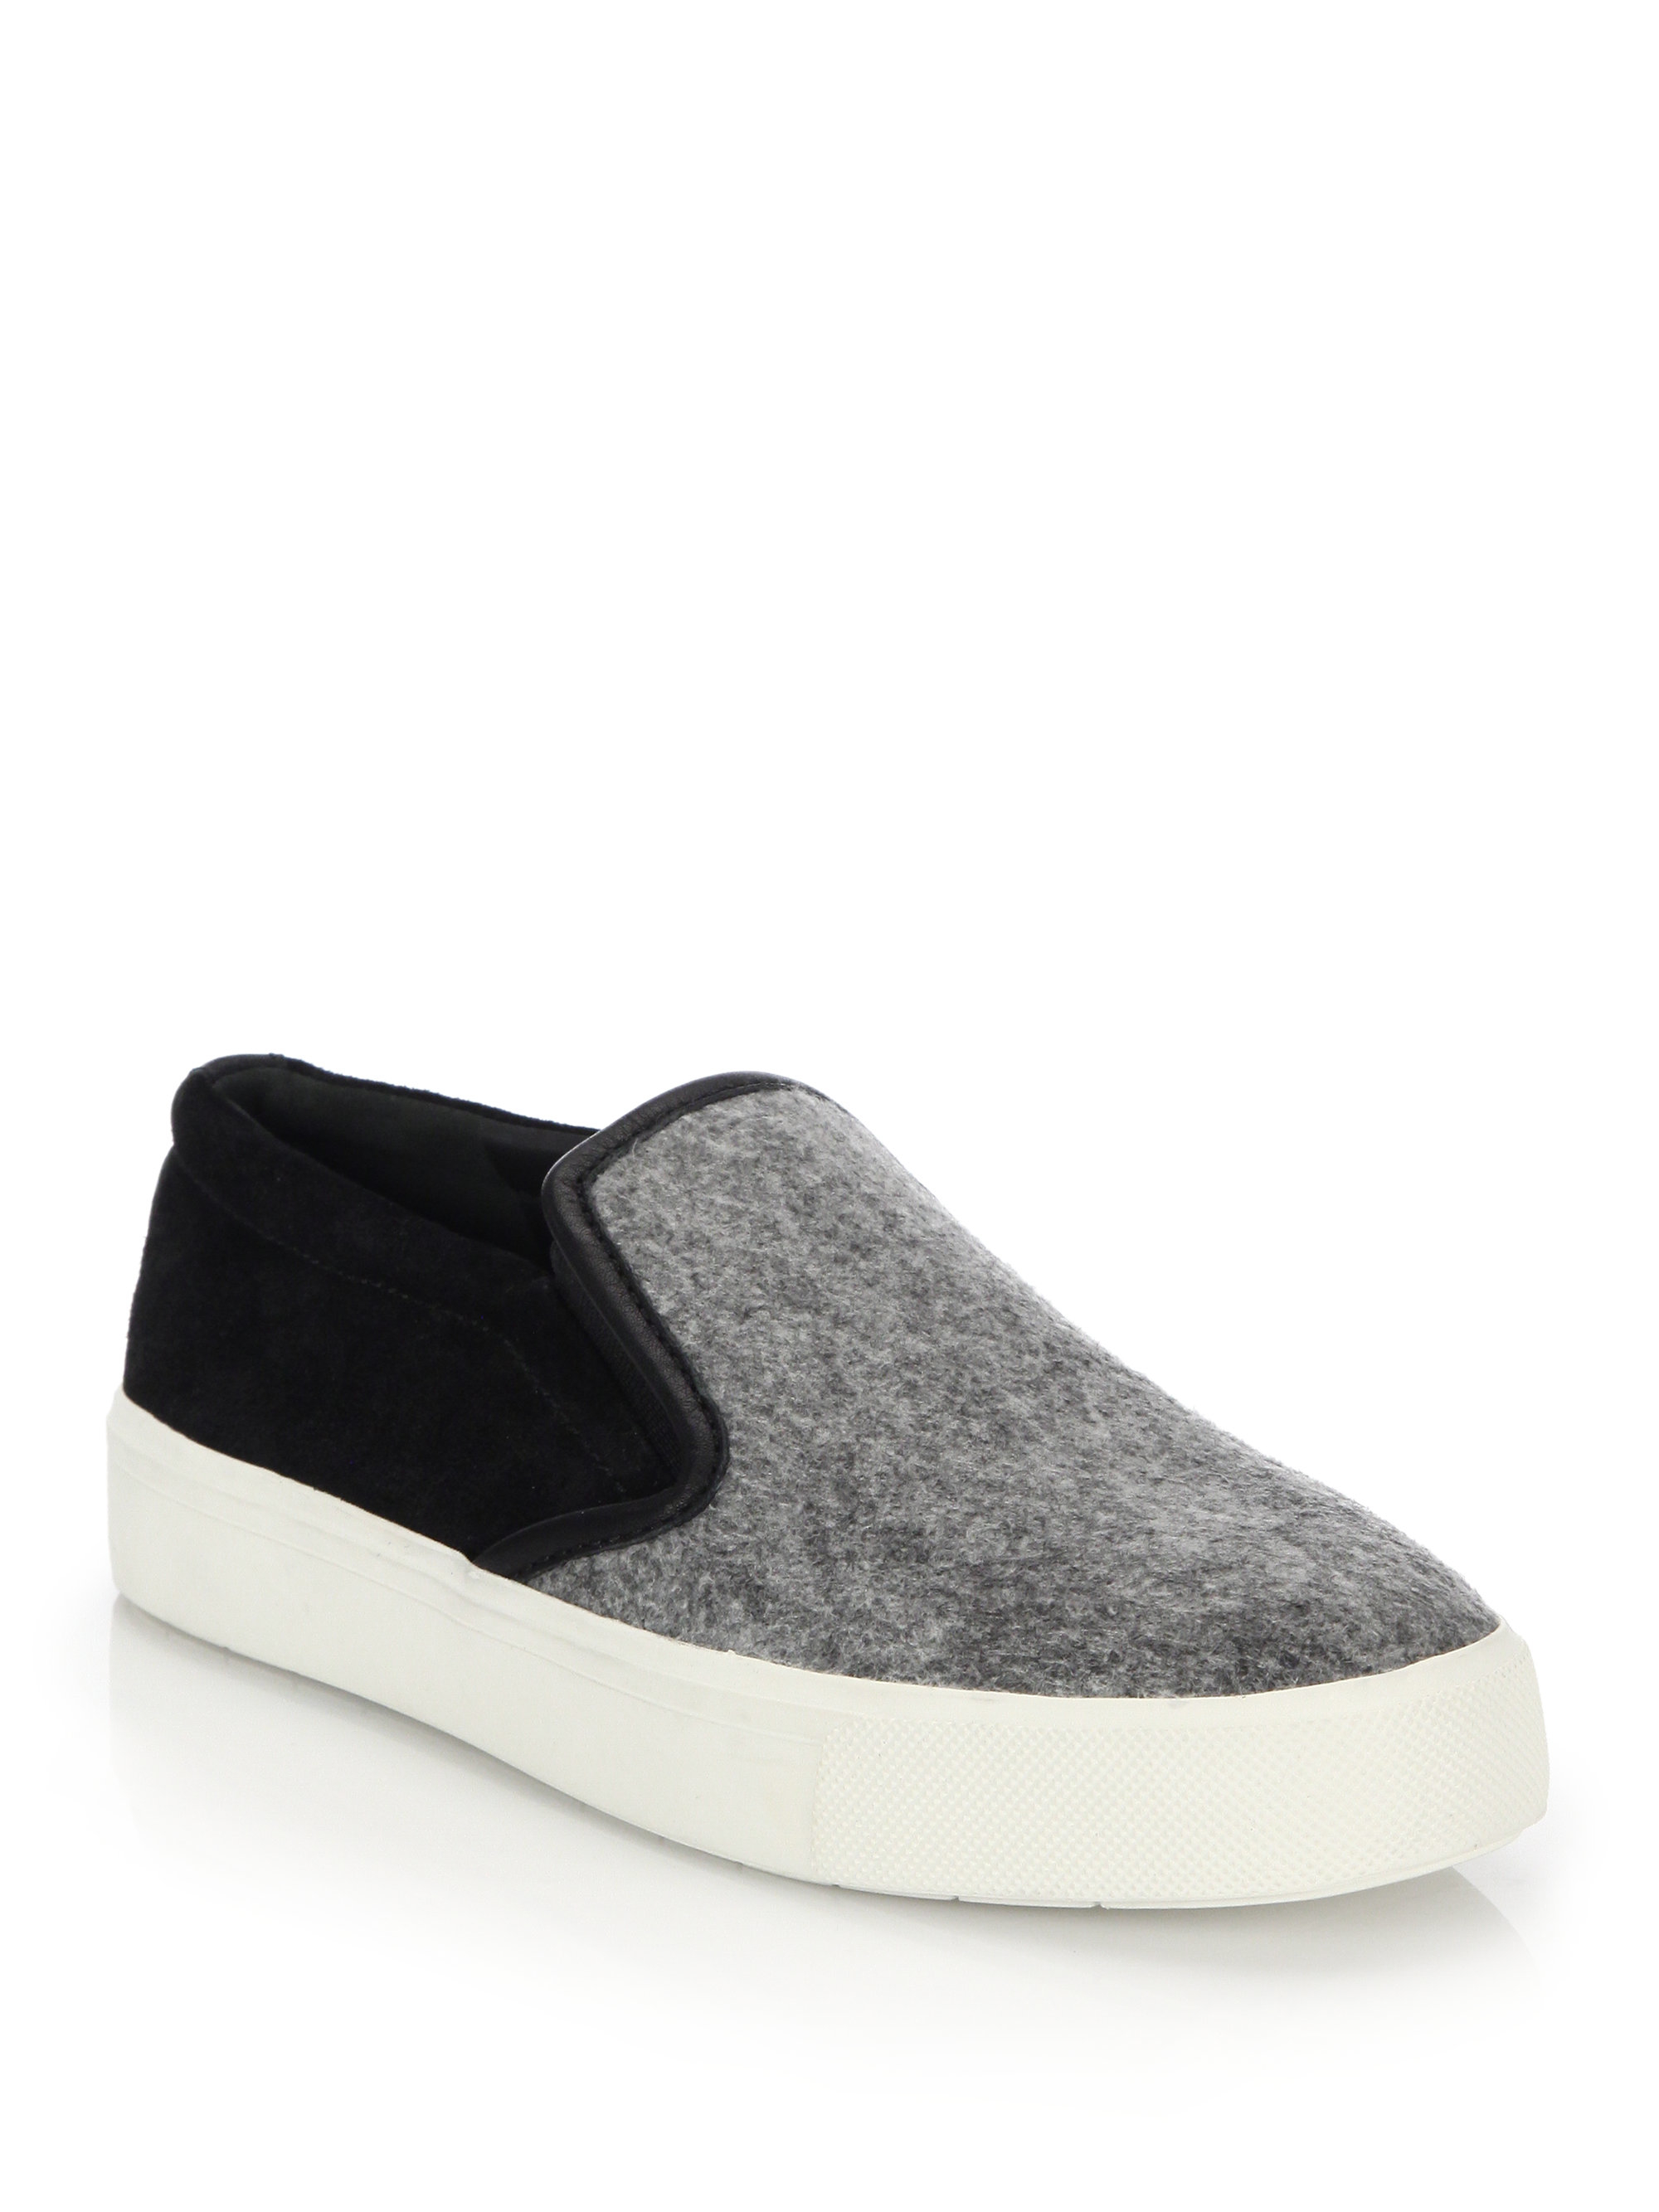 Forever 21 Shoes Wedges